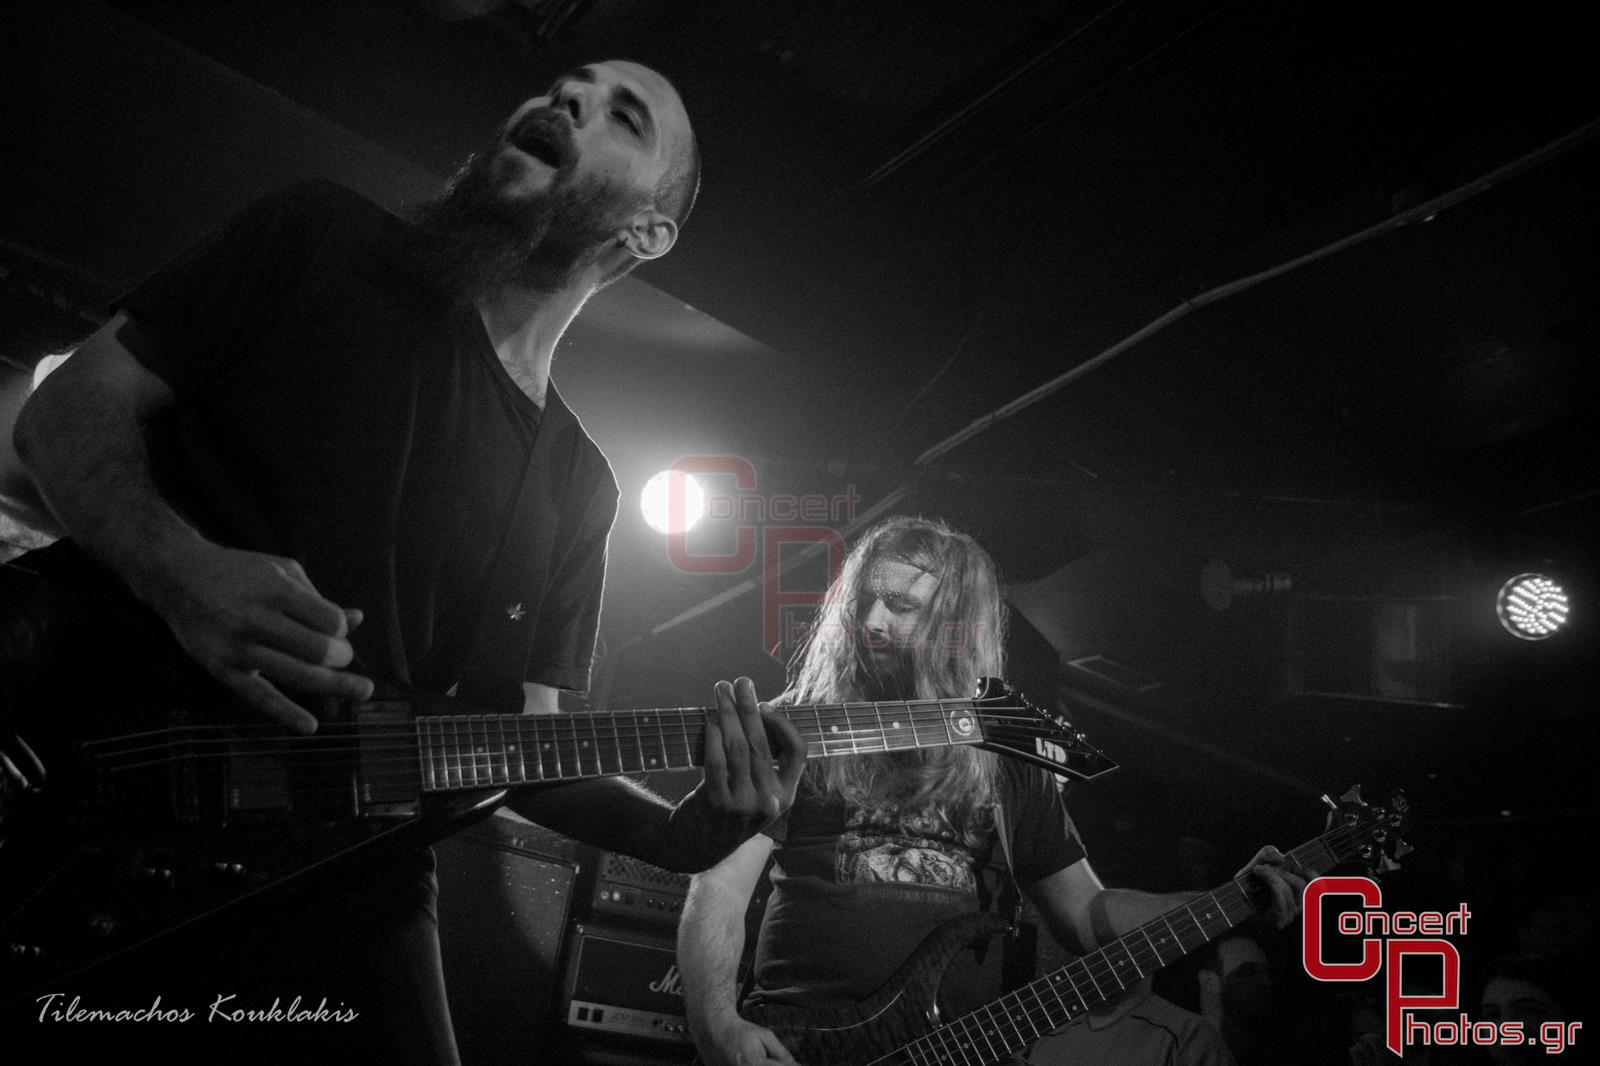 Nightstalker-Nightstalker AN Club photographer:  - concertphotos_-2